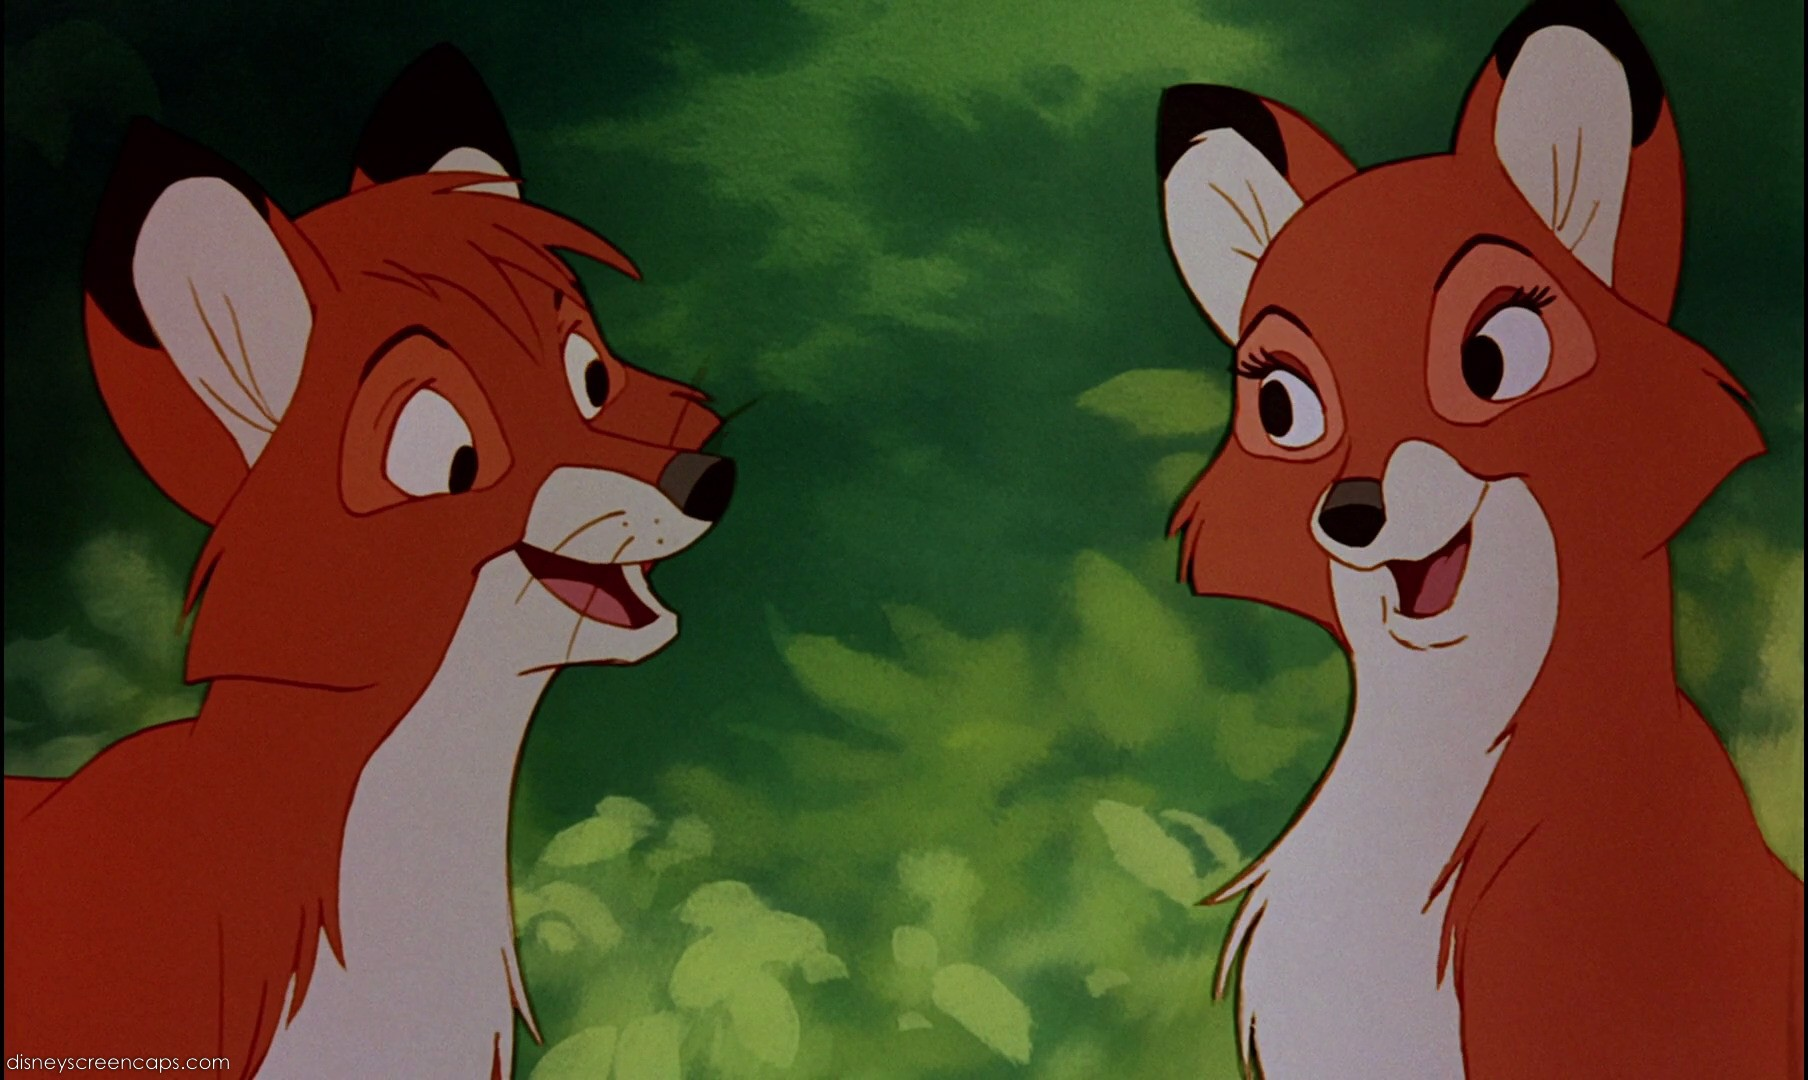 image tod vixey together 2 fox and the hound jpg degrassi